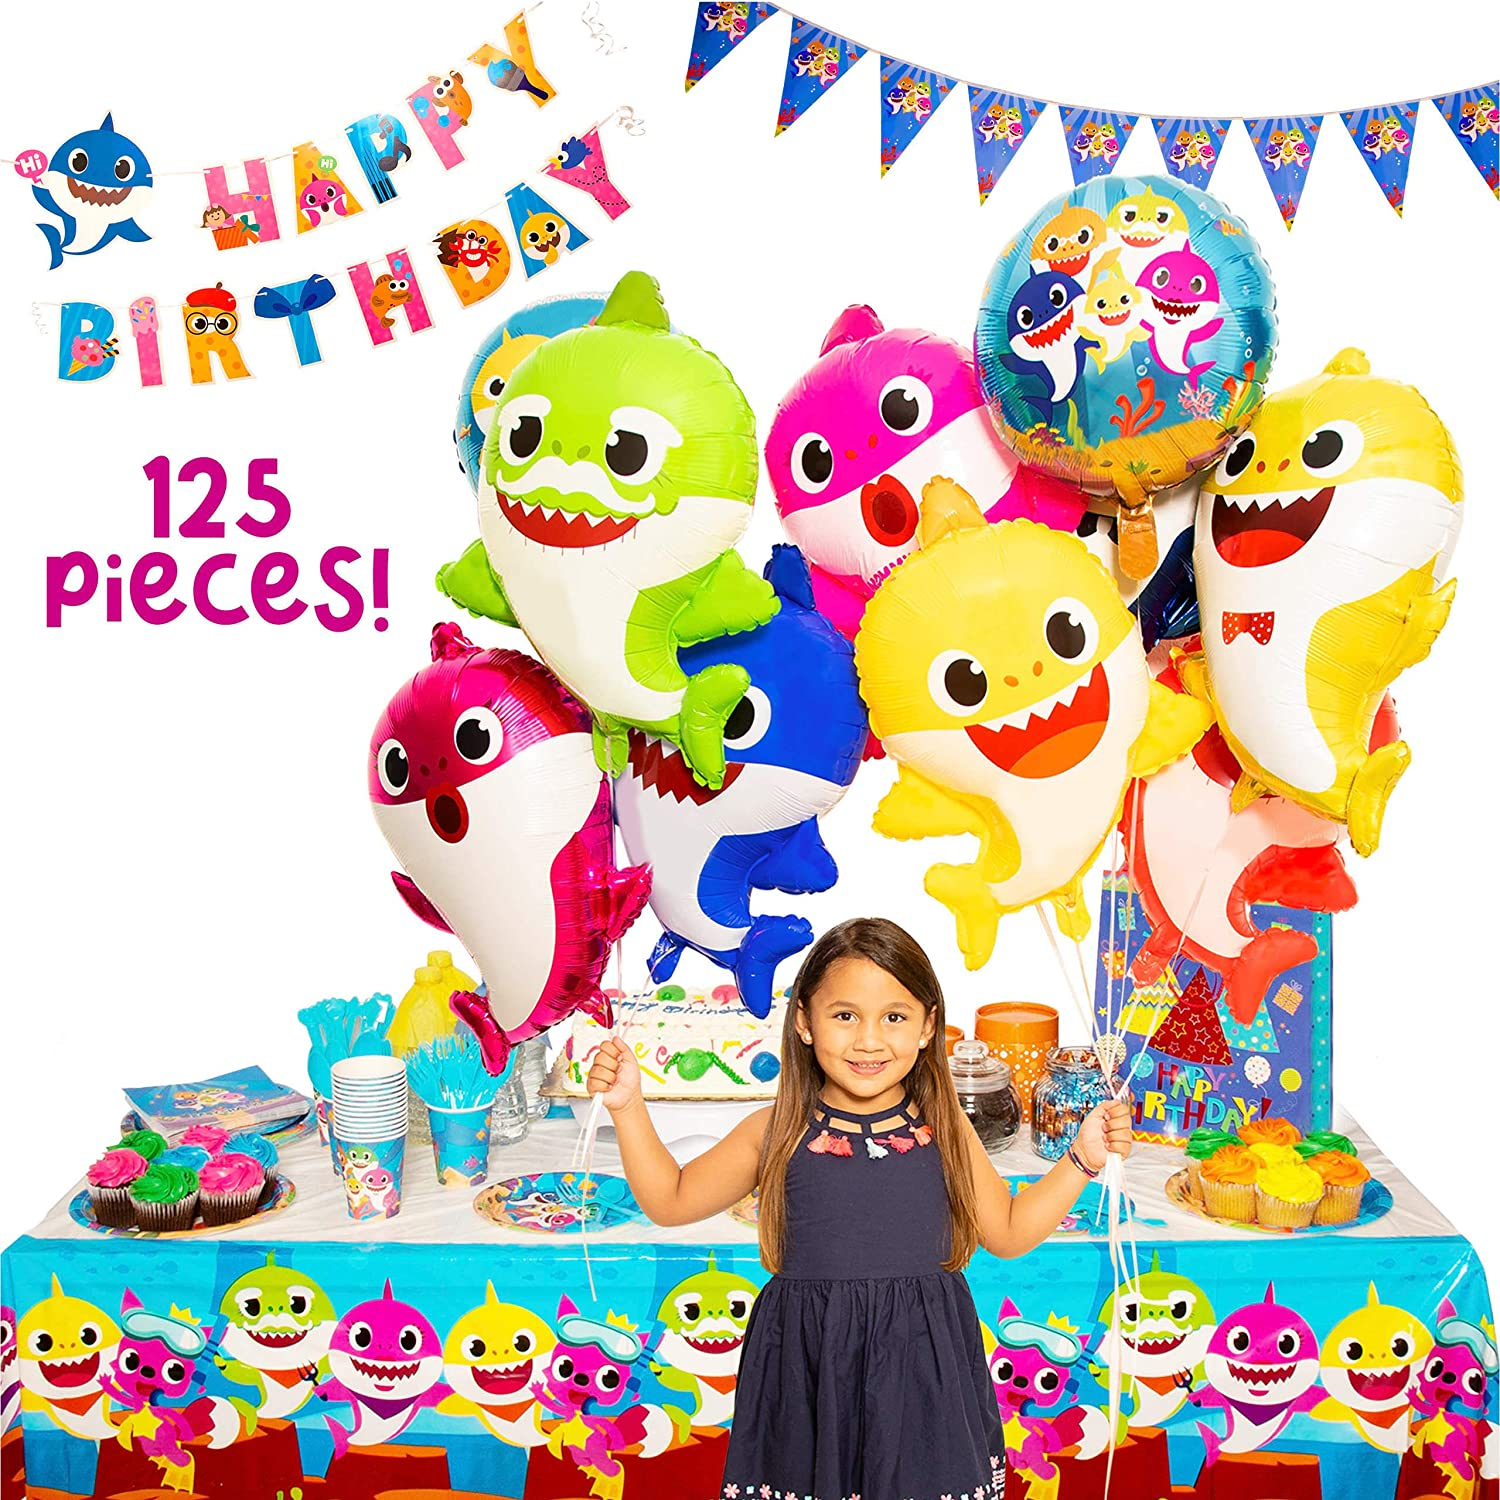 Baby Little Shark Party Supplies - 125Pc Birthday Decor Set - By: Momma Shark - Decorations and Supplies Include Favors, Banner, Balloons, Table Cloth, Plates and 16 Sets of Tableware and Invitations